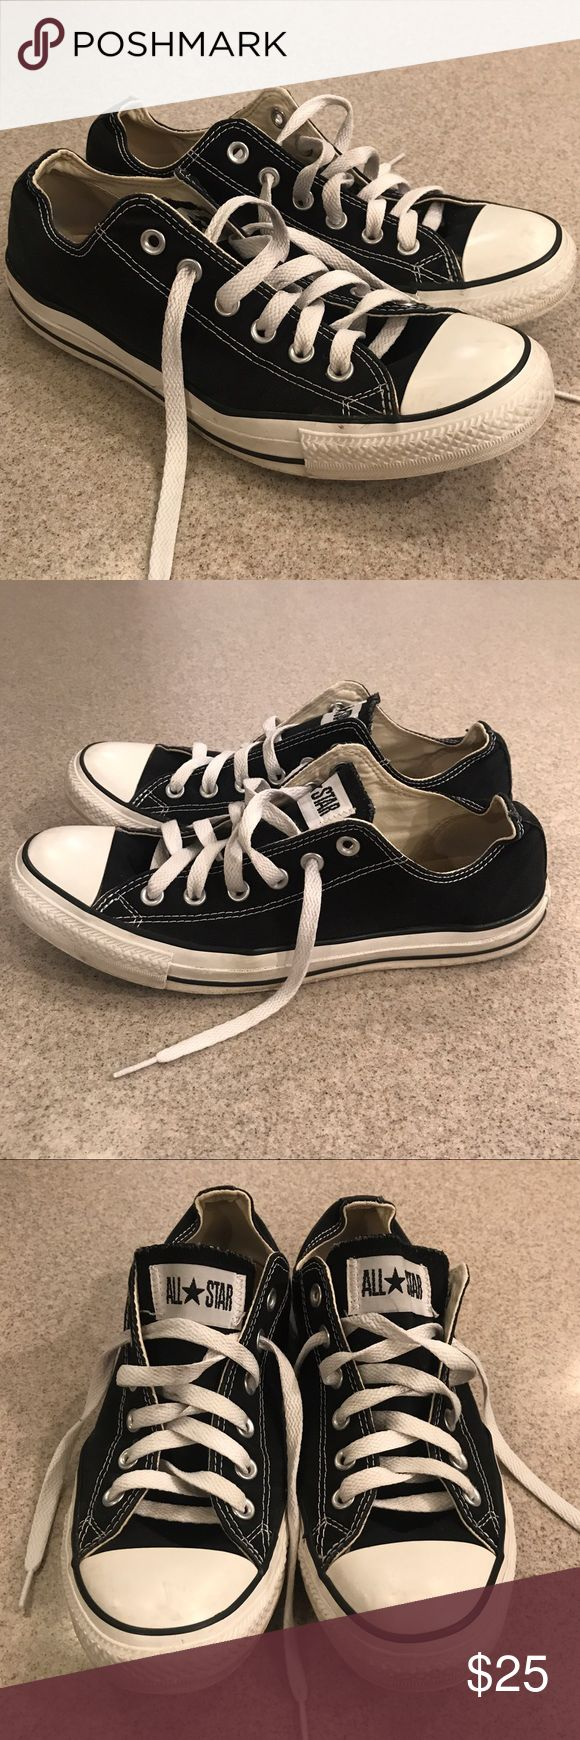 "Converse Chuck Taylor Black Sz 10 Women's Good condition due to small amount of wear on the ""all star"" logo on back, otherwise- soles clean and no stains, tears or holes. Smoke free home Converse Shoes Sneakers"